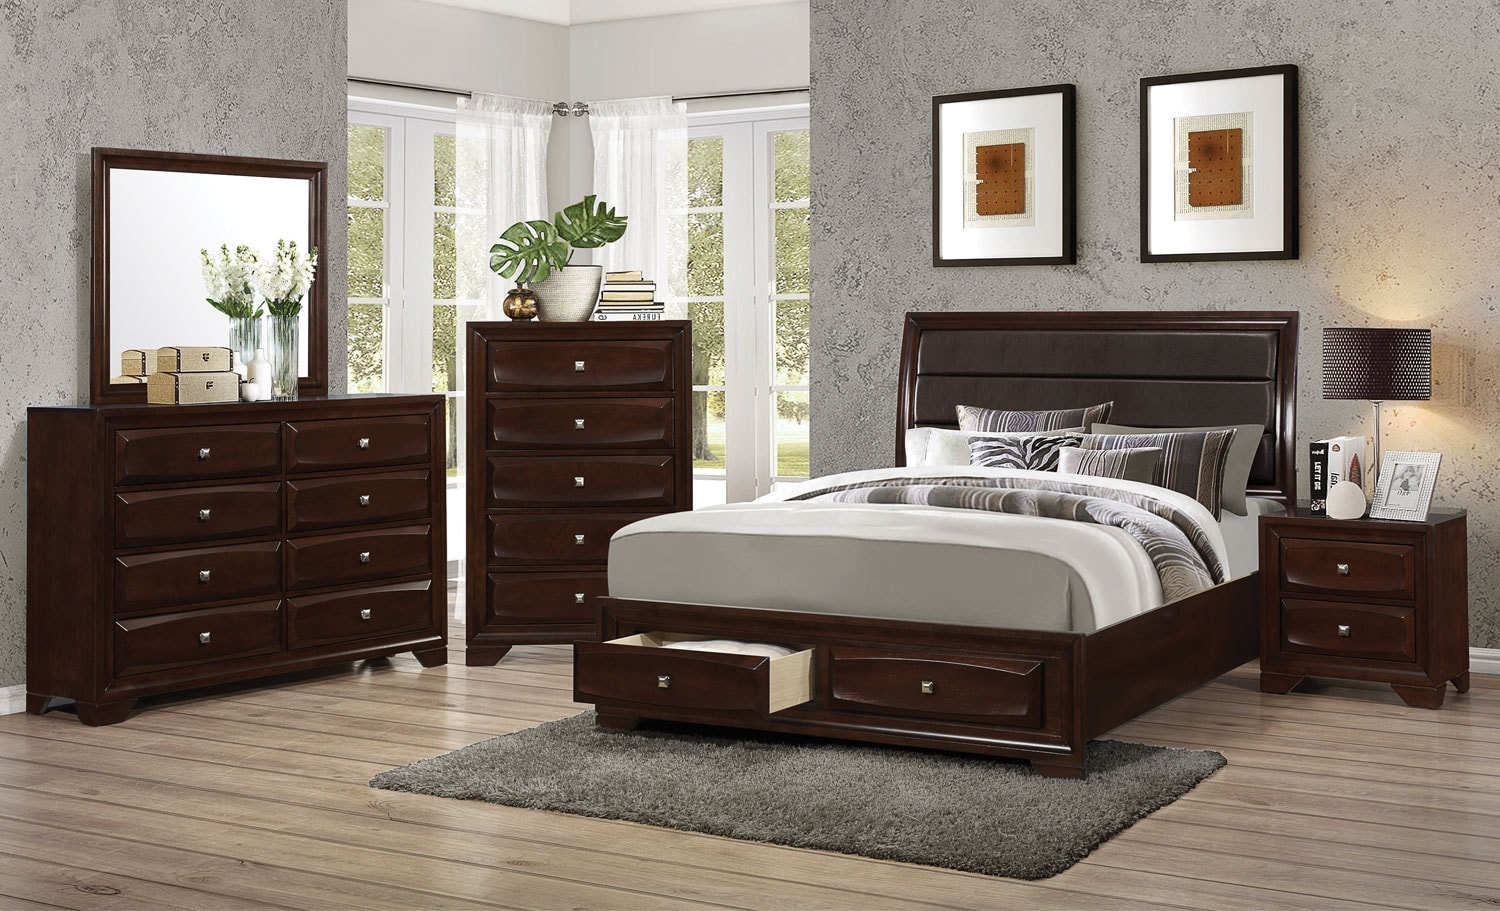 Outstanding Bedroom Furniture - Jaxon 6-Piece King Storage Bedroom Package 1500 x 911 · 605 kB · jpeg